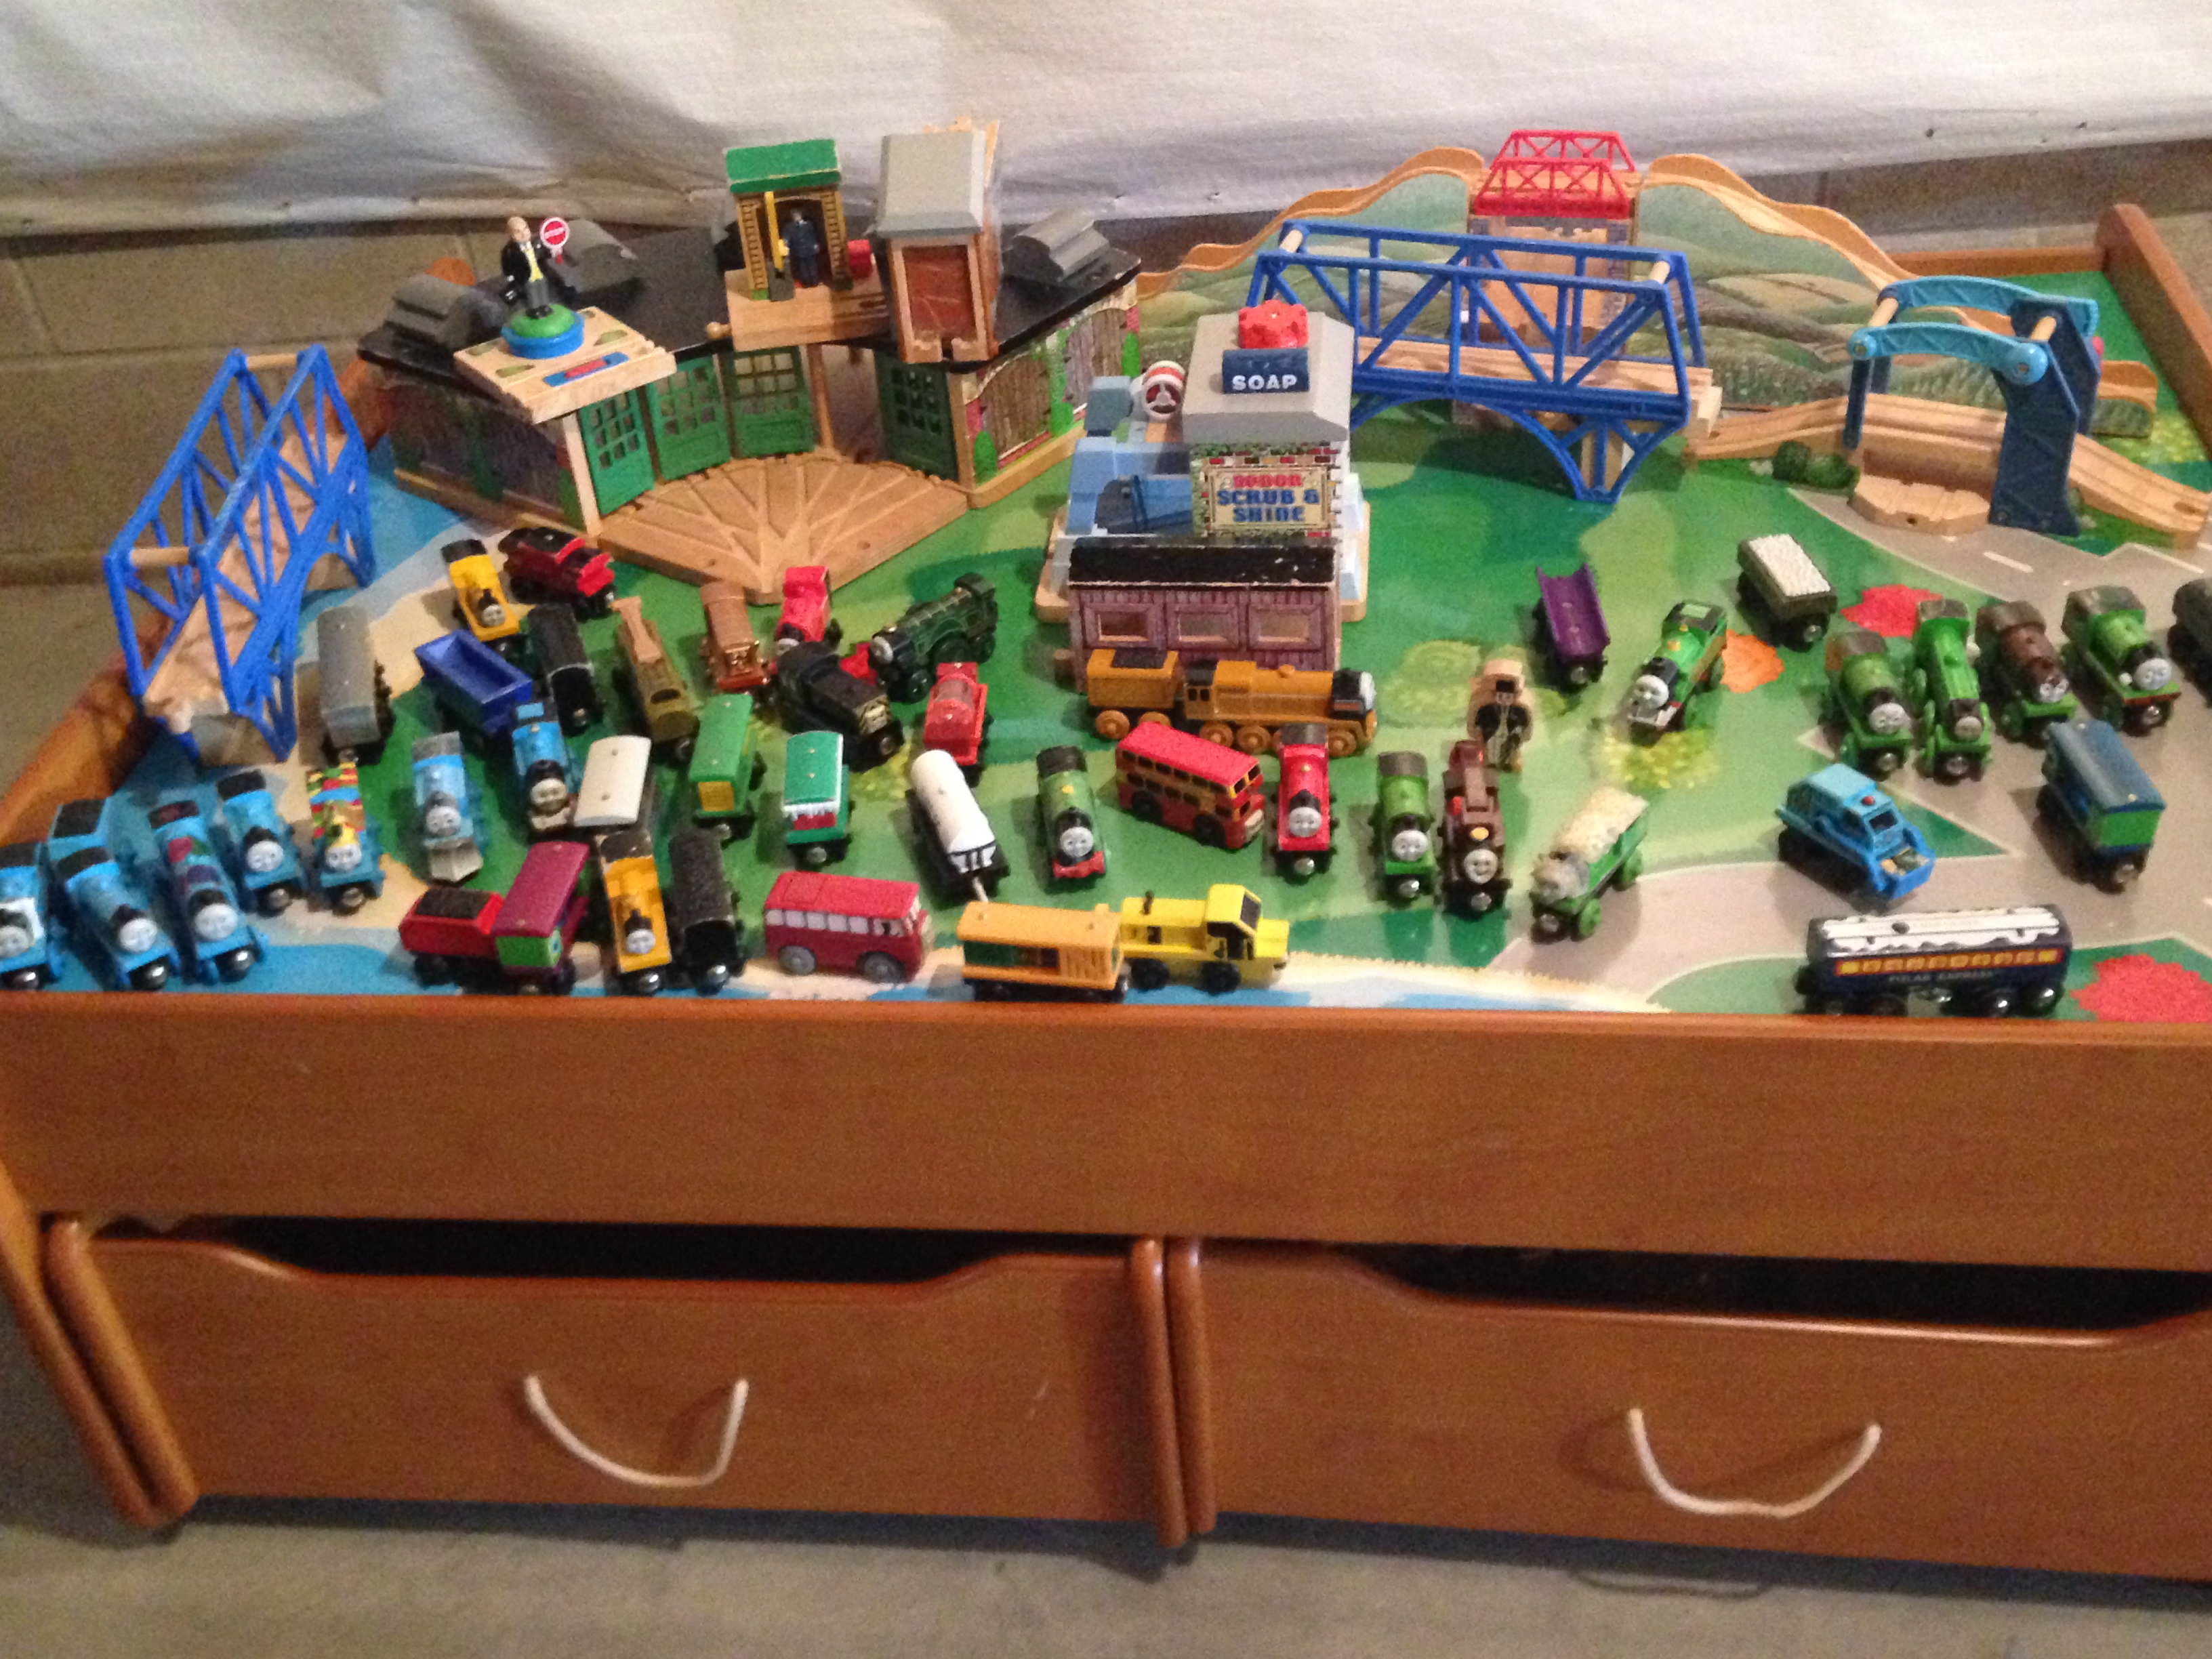 Surprising Thomas The Train Table Set For Sale Images - Best Image ... Surprising Thomas The Train Table Set For Sale Images Best Image & Amusing Thomas The Train Table And Chairs Pictures - Best Image ...